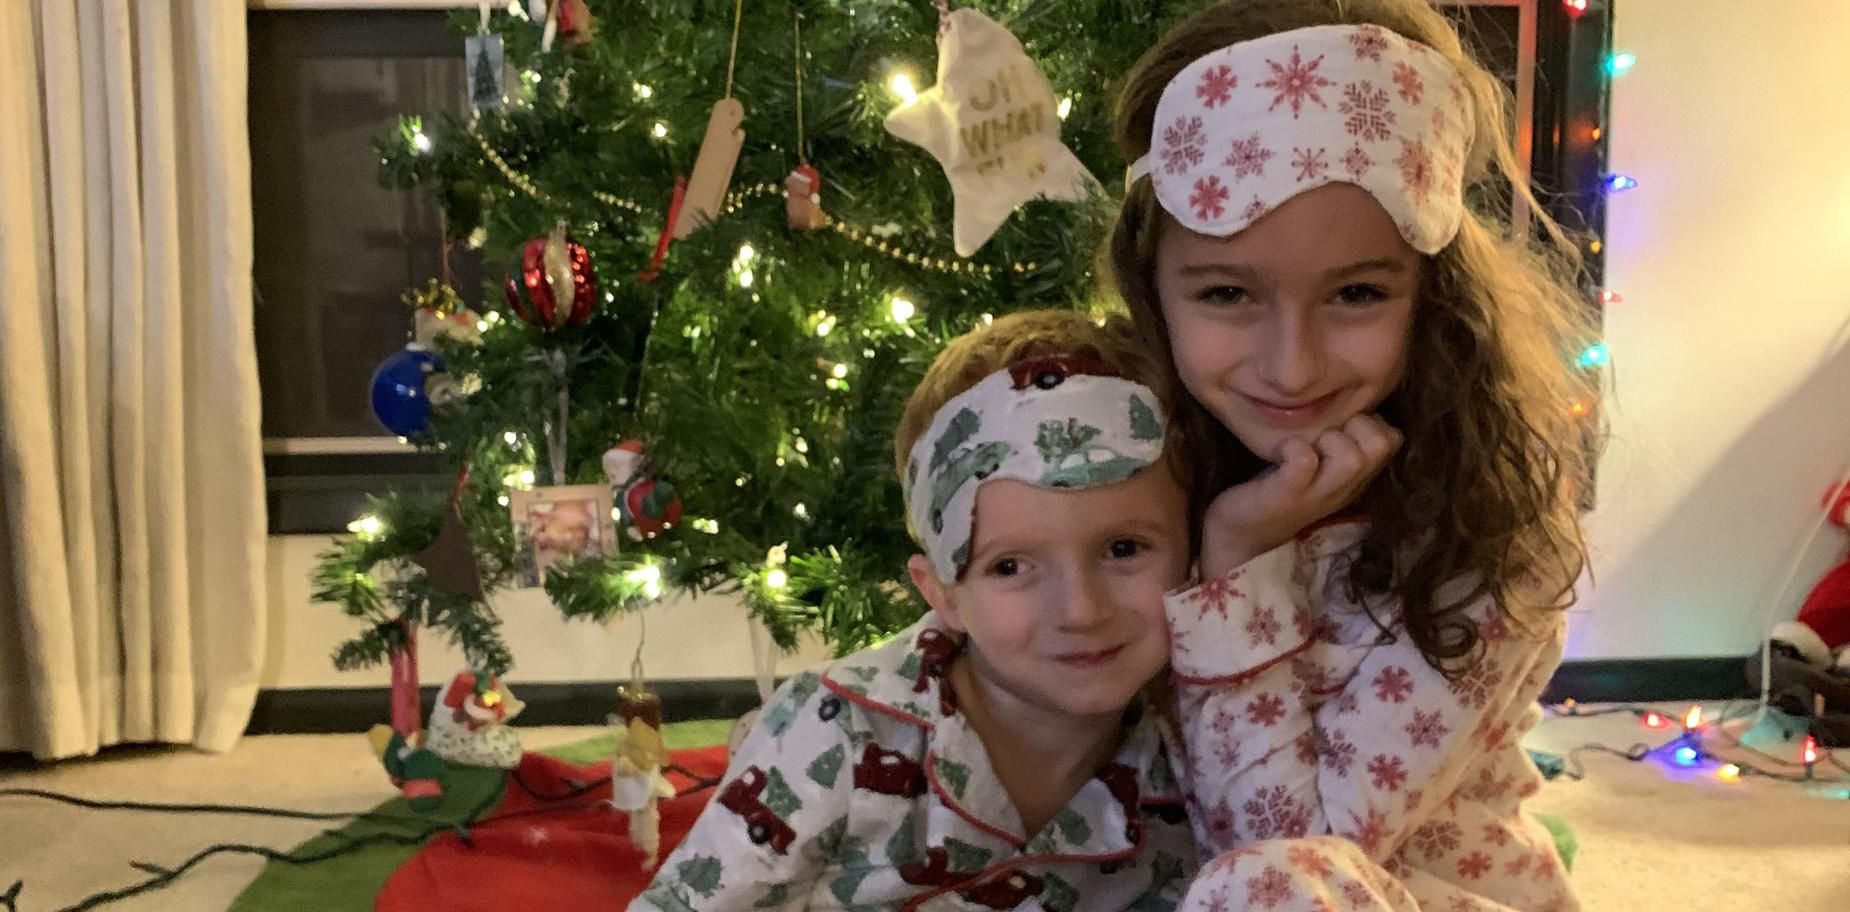 Picture of children in holiday clothing